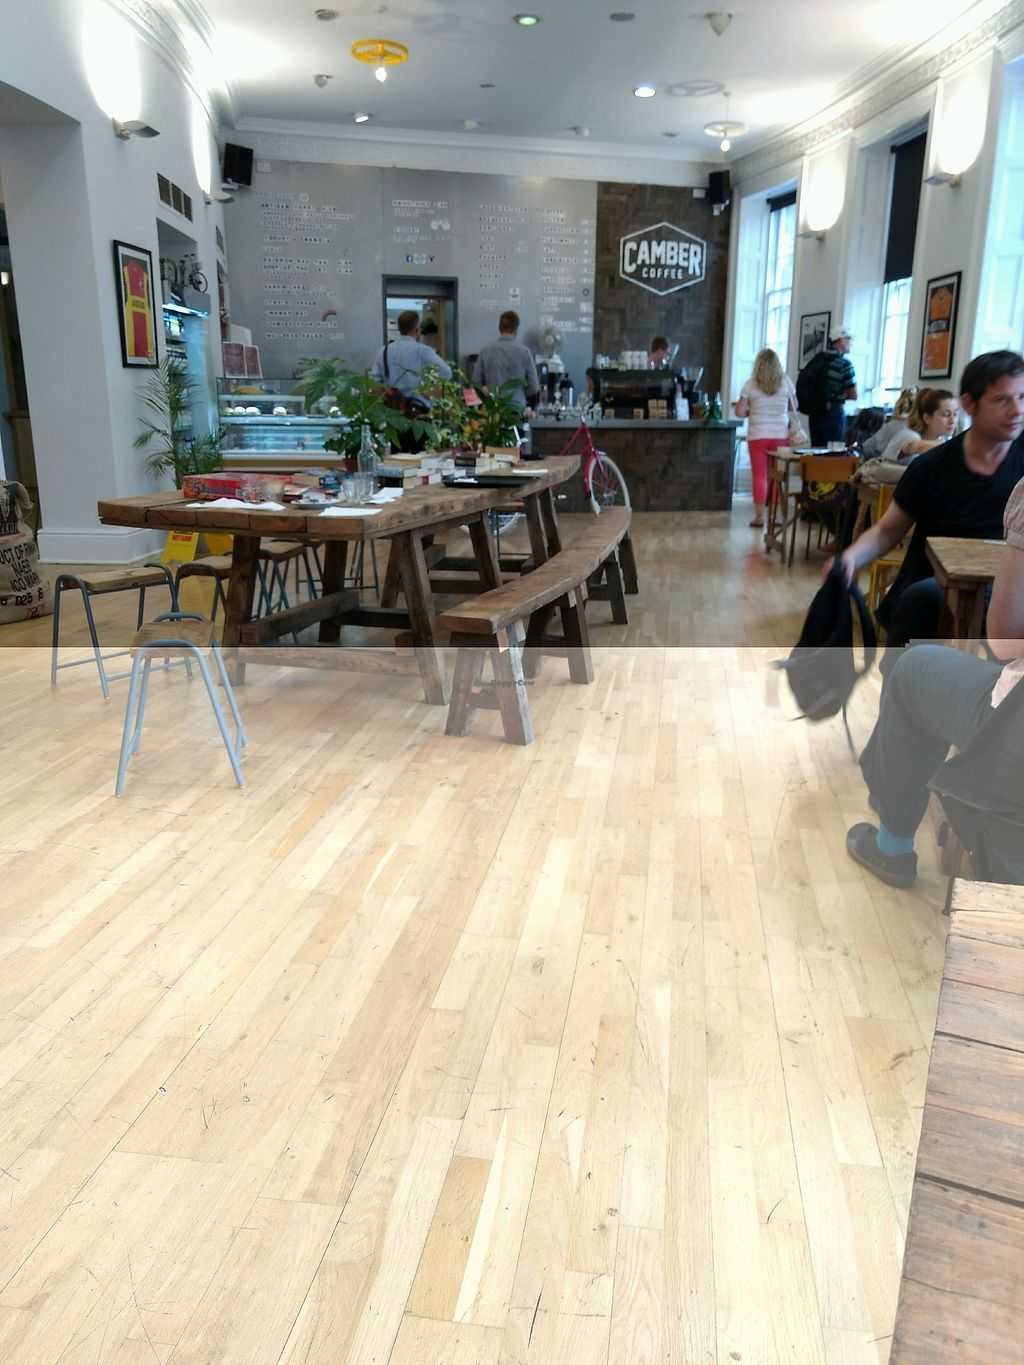 """Photo of Camber Coffee  by <a href=""""/members/profile/craigmc"""">craigmc</a> <br/>space <br/> August 22, 2017  - <a href='/contact/abuse/image/95521/295627'>Report</a>"""